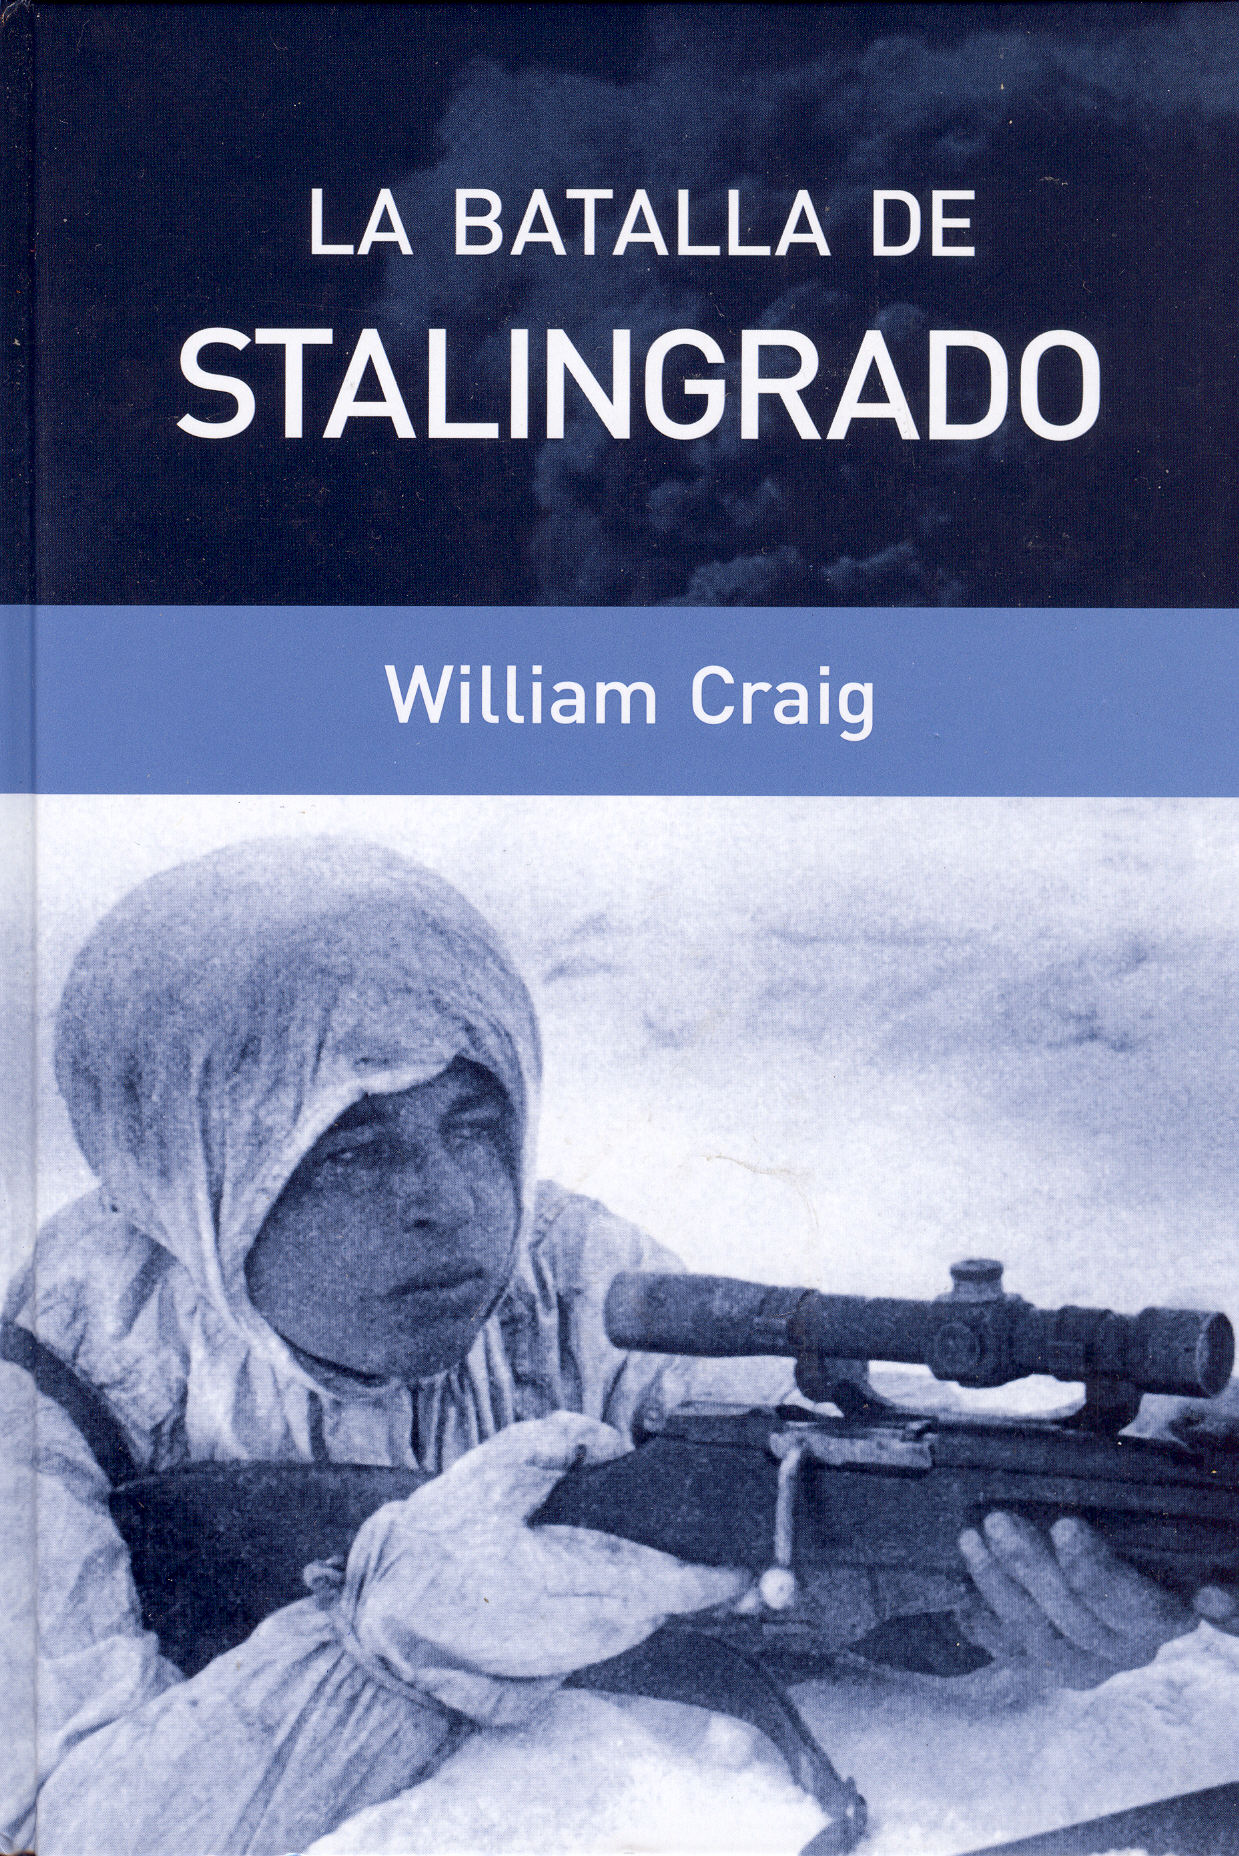 La batalla de stalingrado william craig